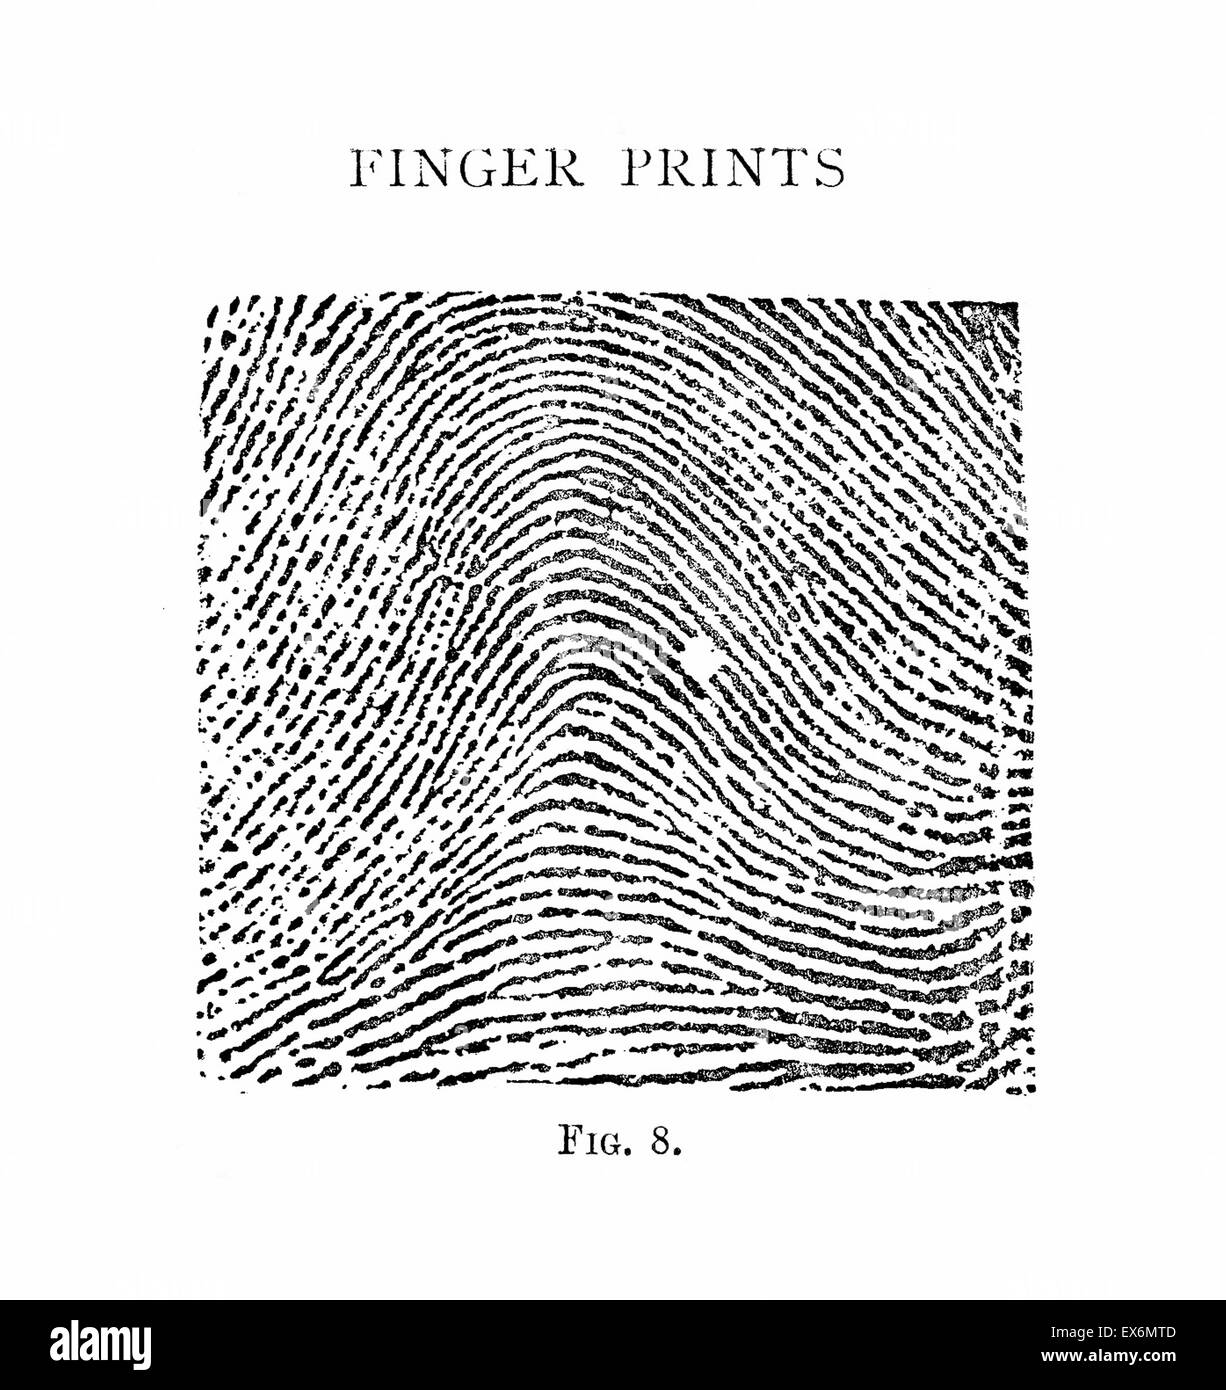 henry system Henry classification system: a summary primary each finger has a definite numerical value when a whorl type pattern is present the total of these values make up the .